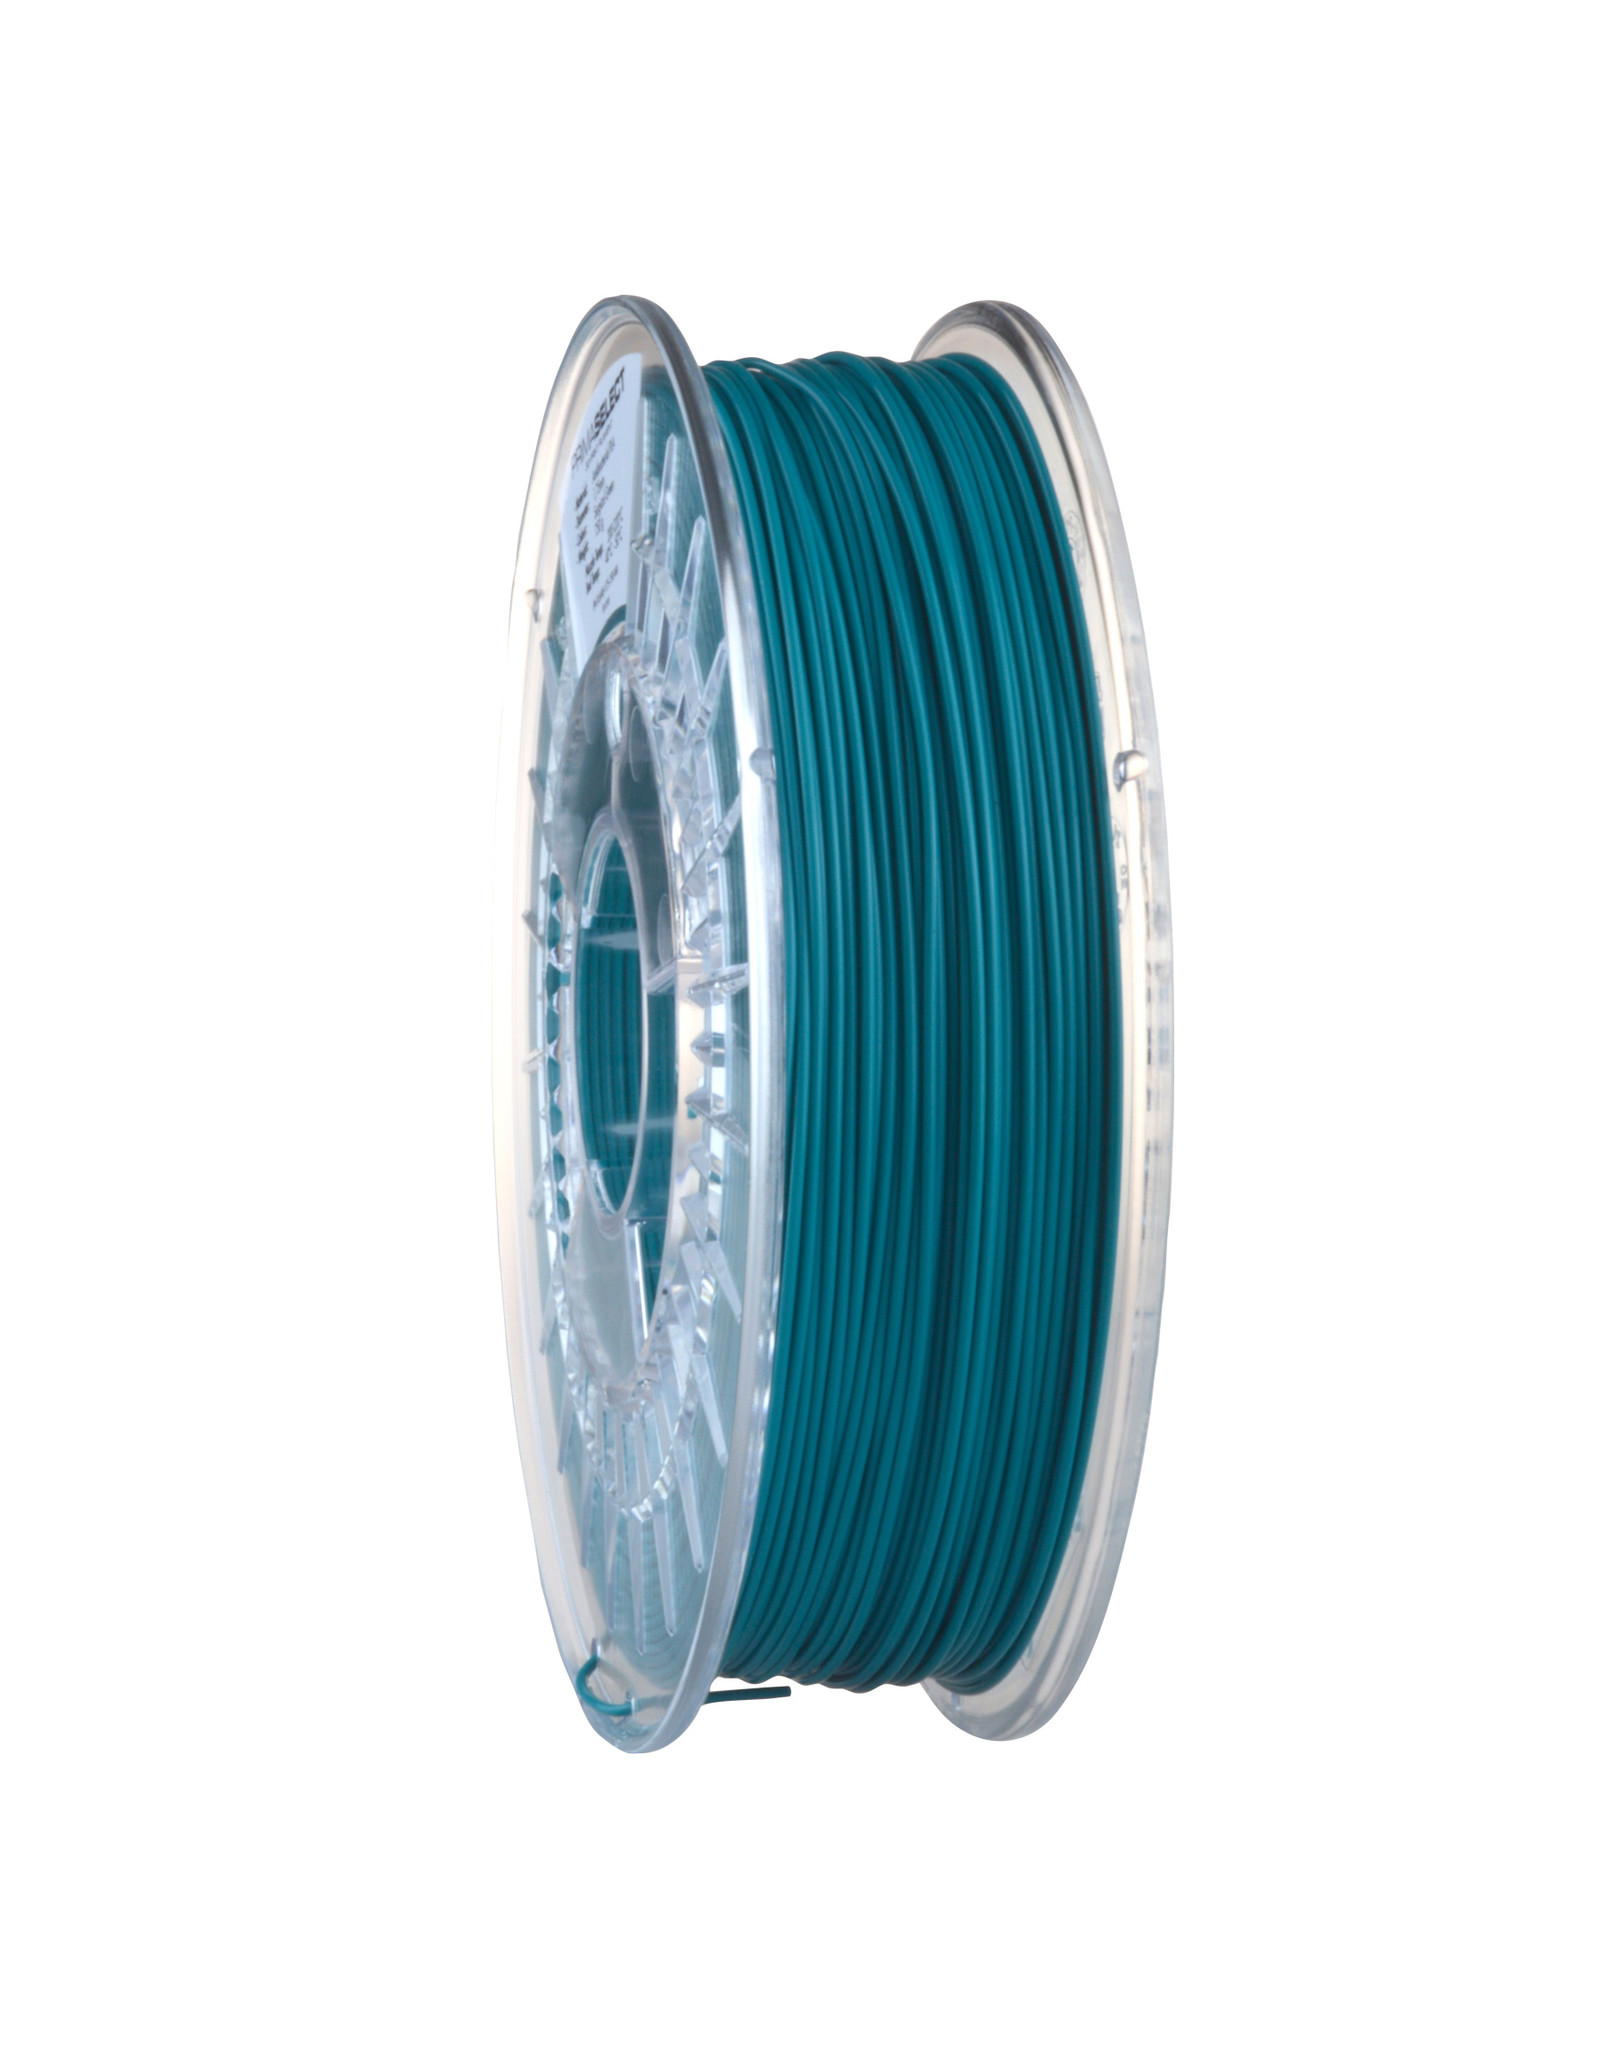 Prima PrimaSelect™ PLA AntiBacterial - 1.75mm - 750 g - Surgical Green